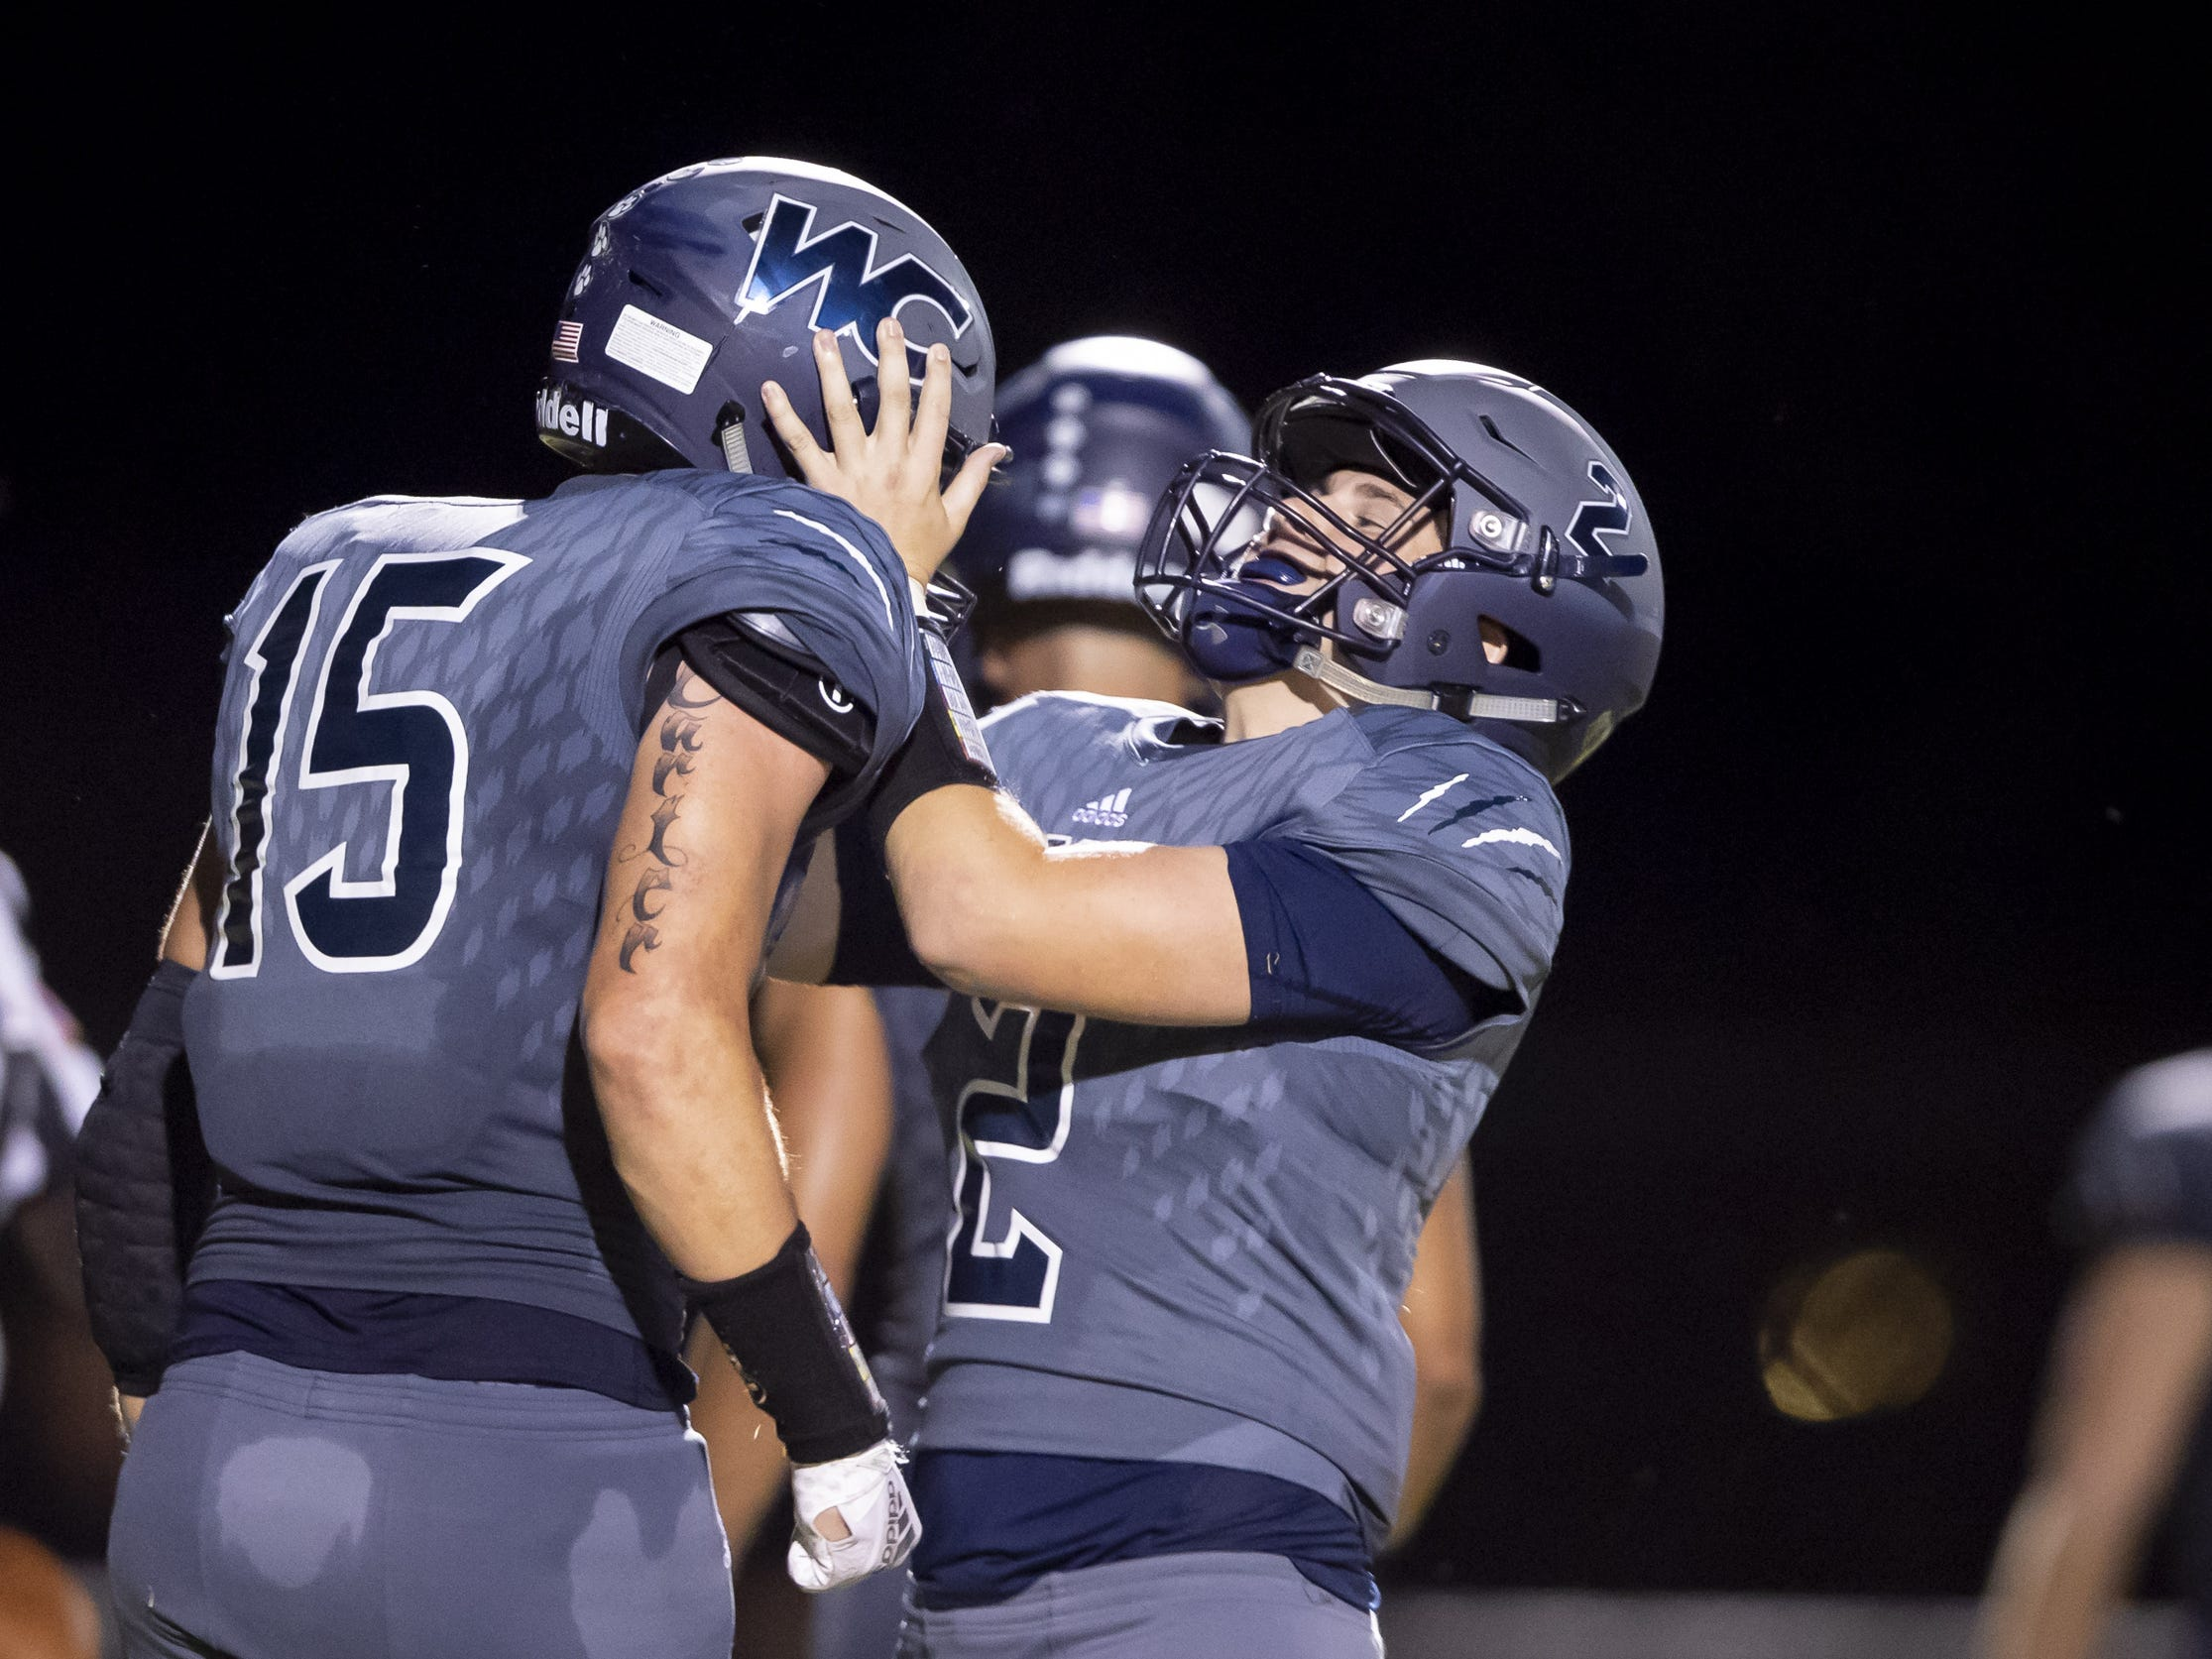 Senior wide receiver Ben Carter (15) and senior quarterback Brendan Haynes (2) of the Willow Canyon Wildcats celebrate a touchdown against the Shadow Ridge Stallions at Willow Canyon High School on Friday, September 7, 2018 in Surprise, Arizona. #azhsfb